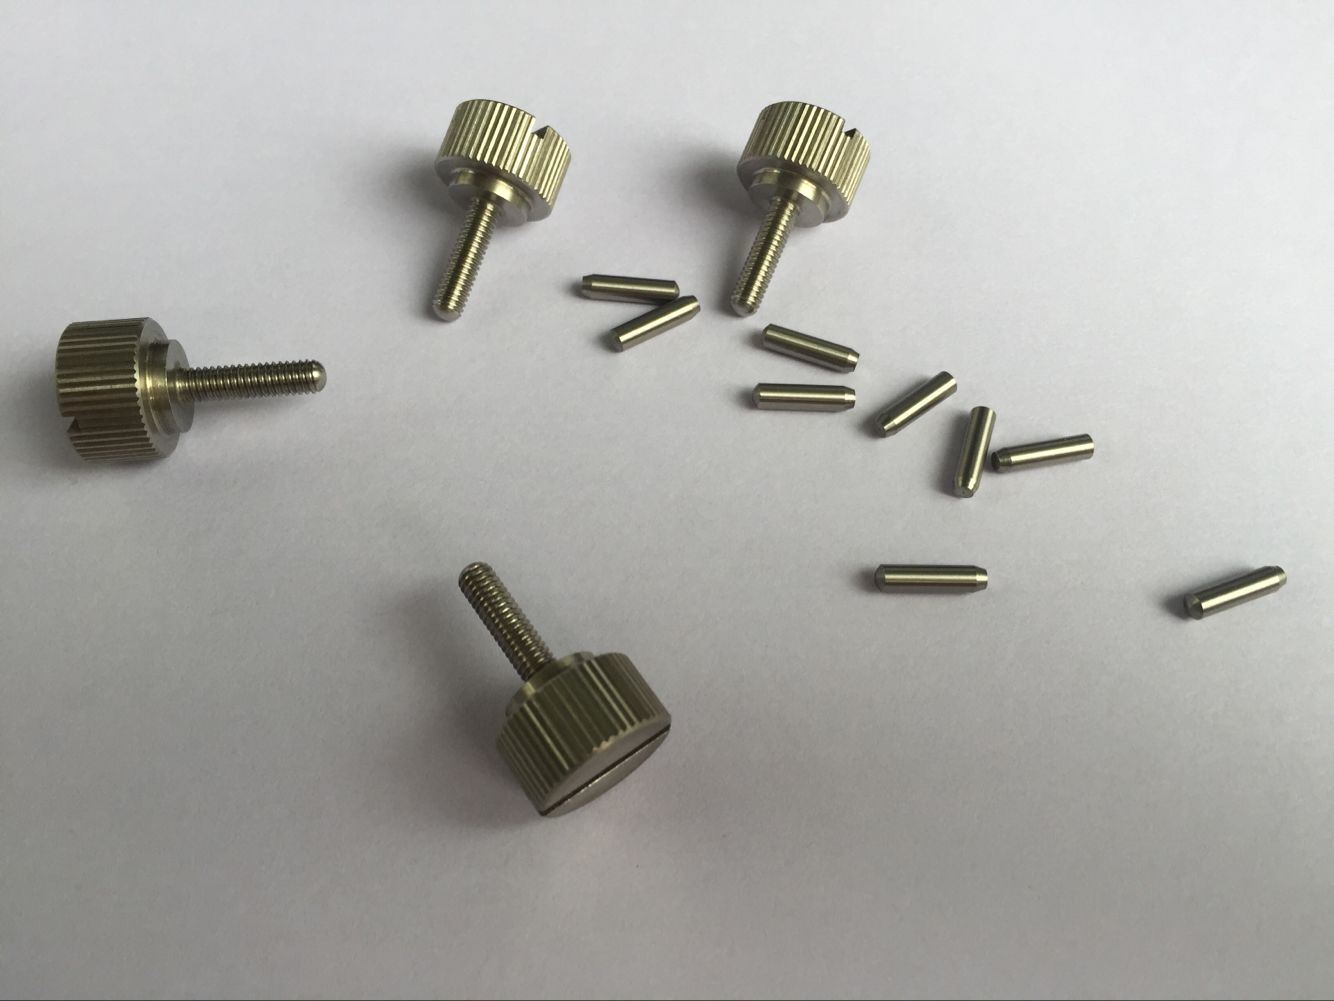 Custom Machining Part, Precision Turned Part, Stainless Steel Thumb Screw